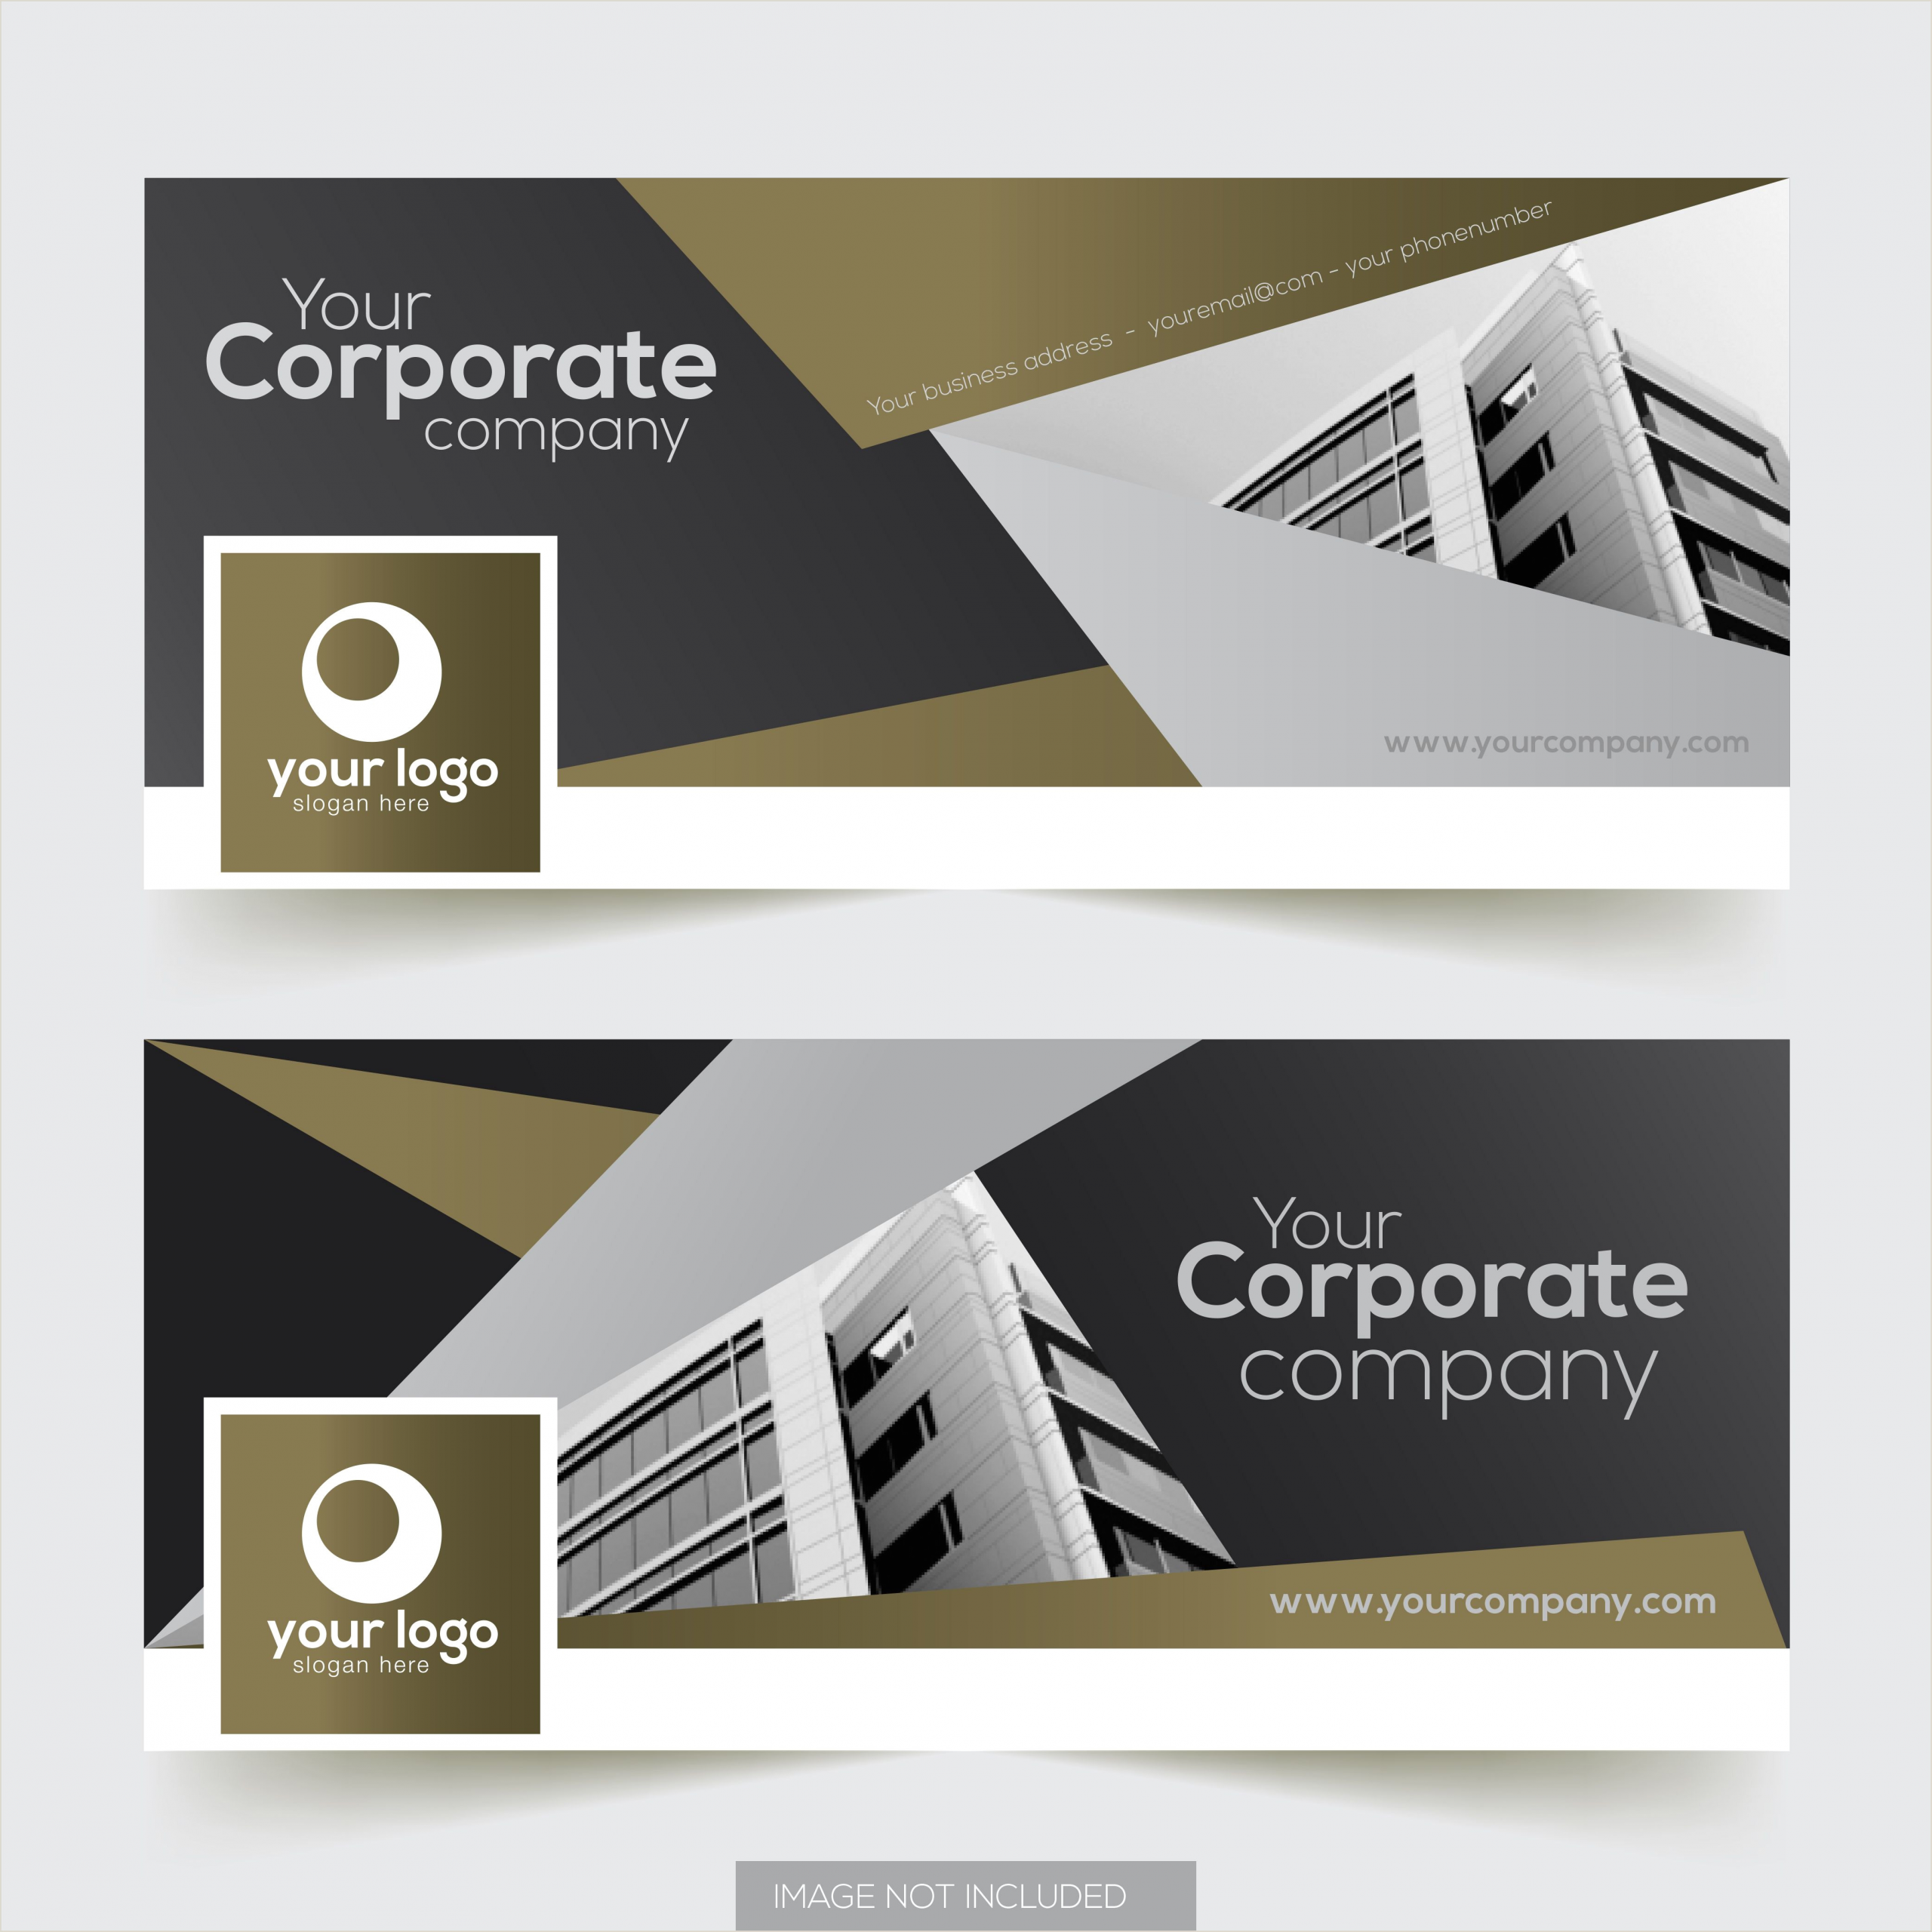 Facebook Logos For Business Cards Corporaate Cover Timeline Cover Corporate